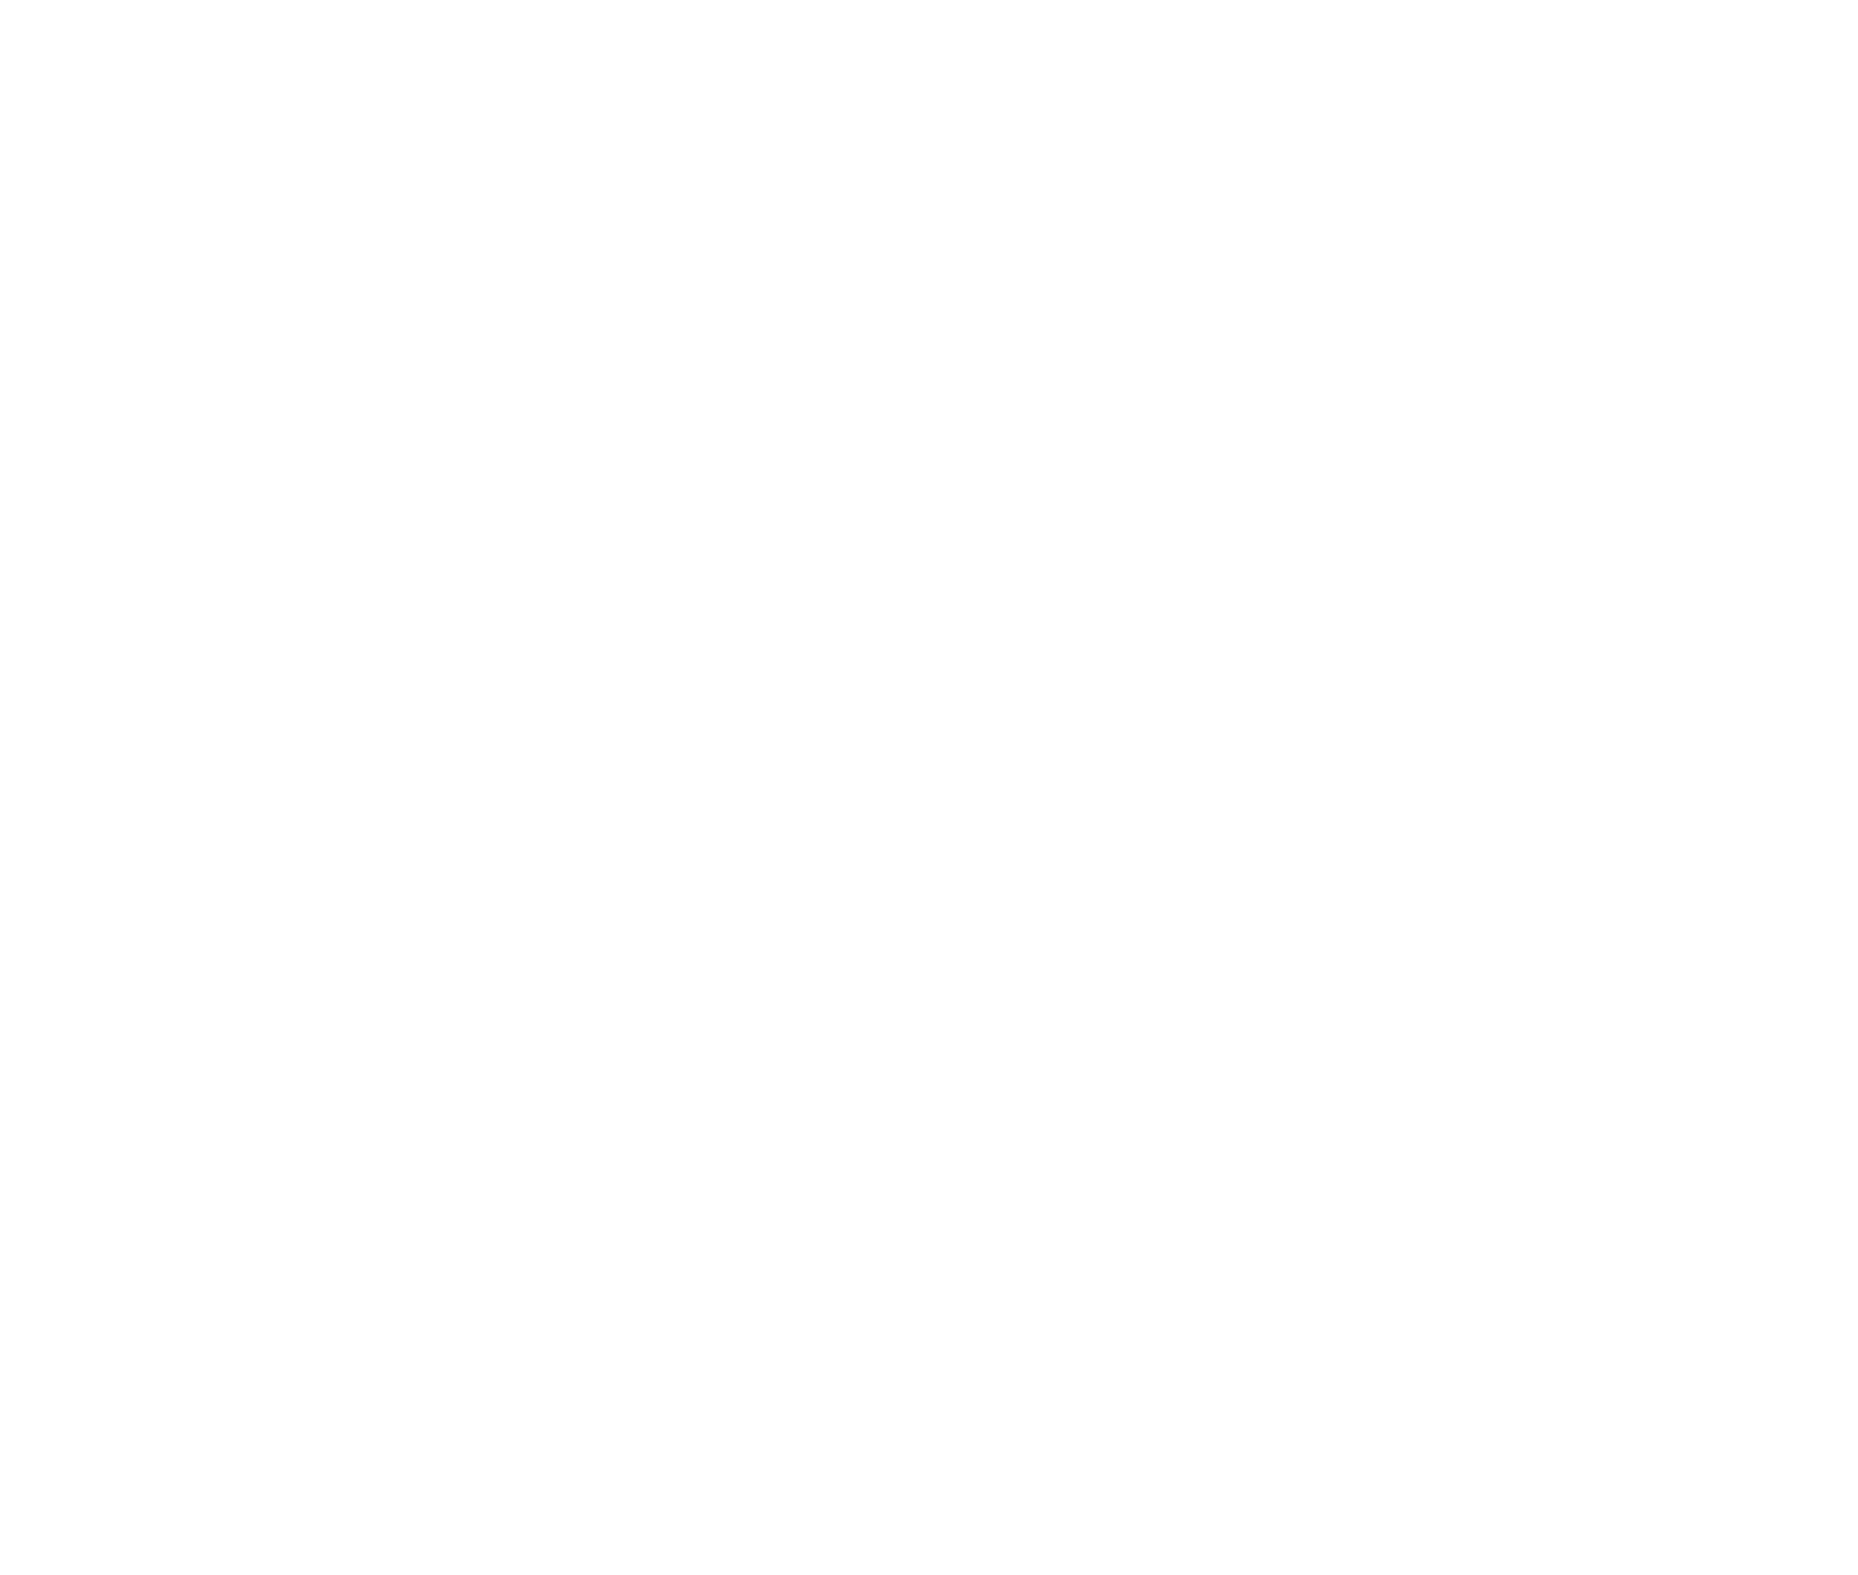 Frameline Film Festival - June 16 & 21, 2018